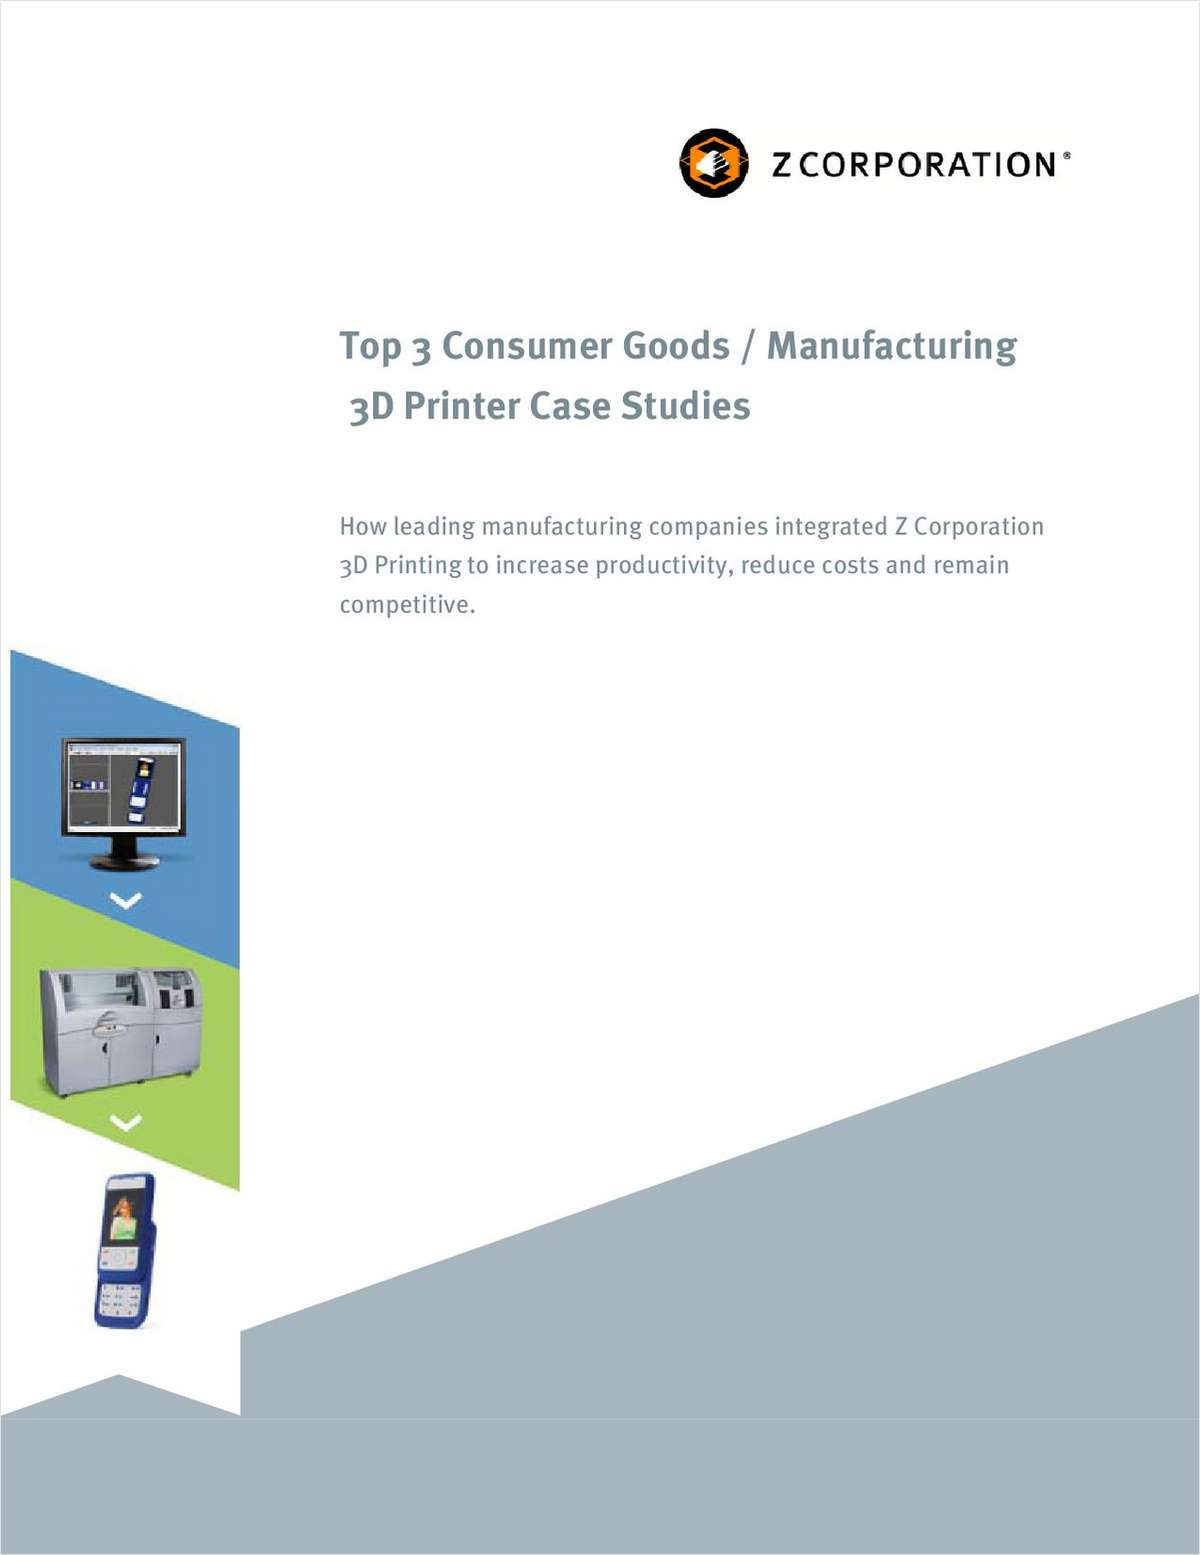 Z Corp's Top Three 3D Printing Case Studies Paper